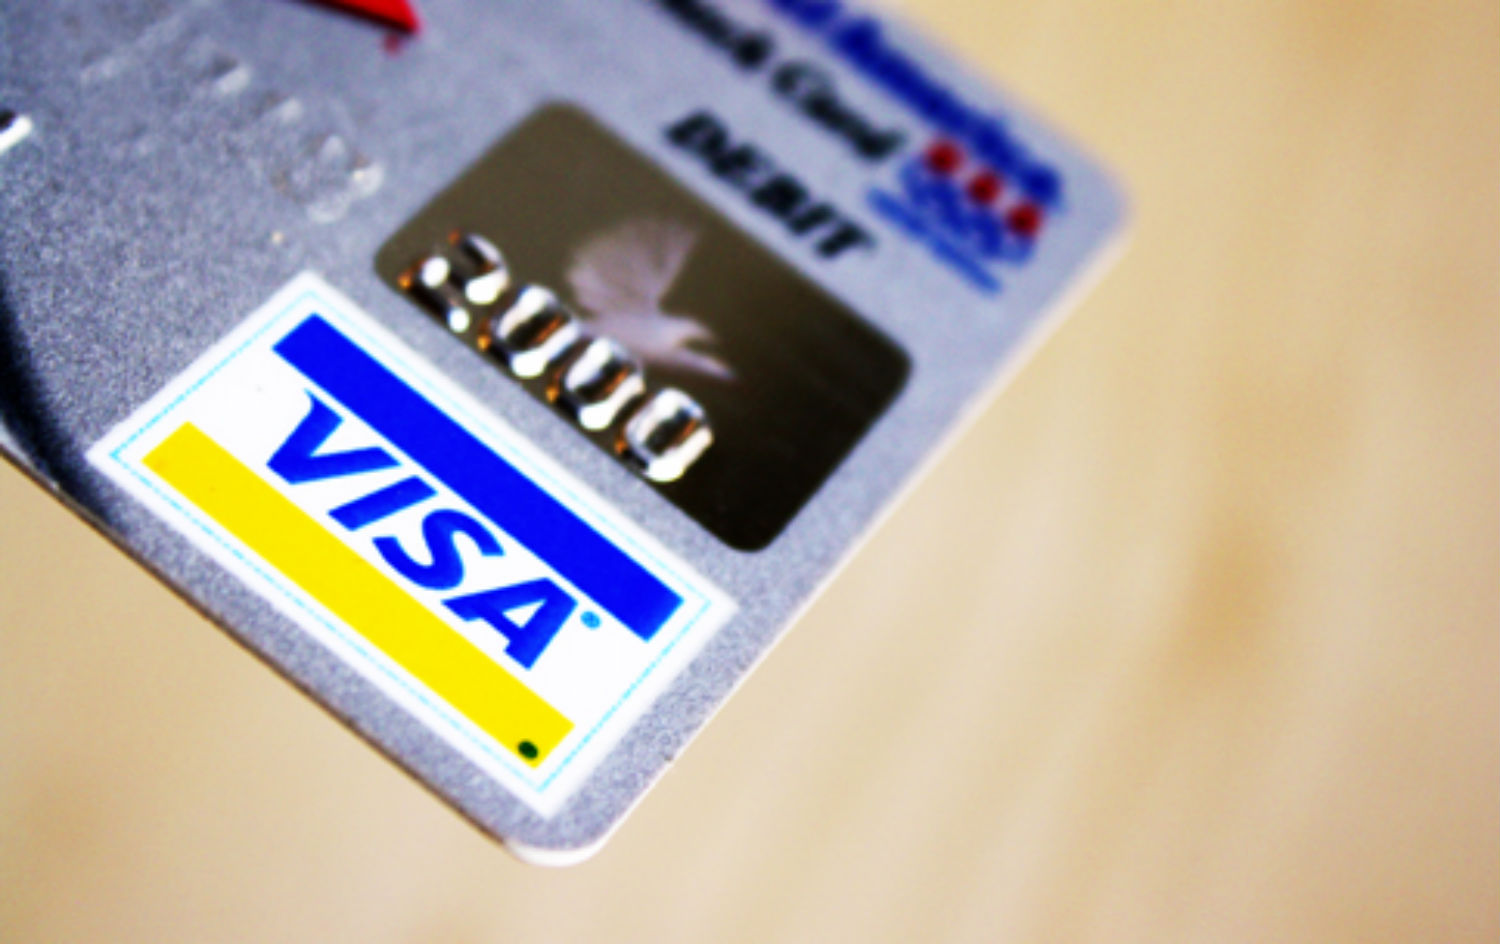 pLenders-are-offering-Visa-giftcards-to-stop-quotreckless-regulators.quot-Courtesy-of-Flikr-user-moneyblognewz.-CC-2.0p